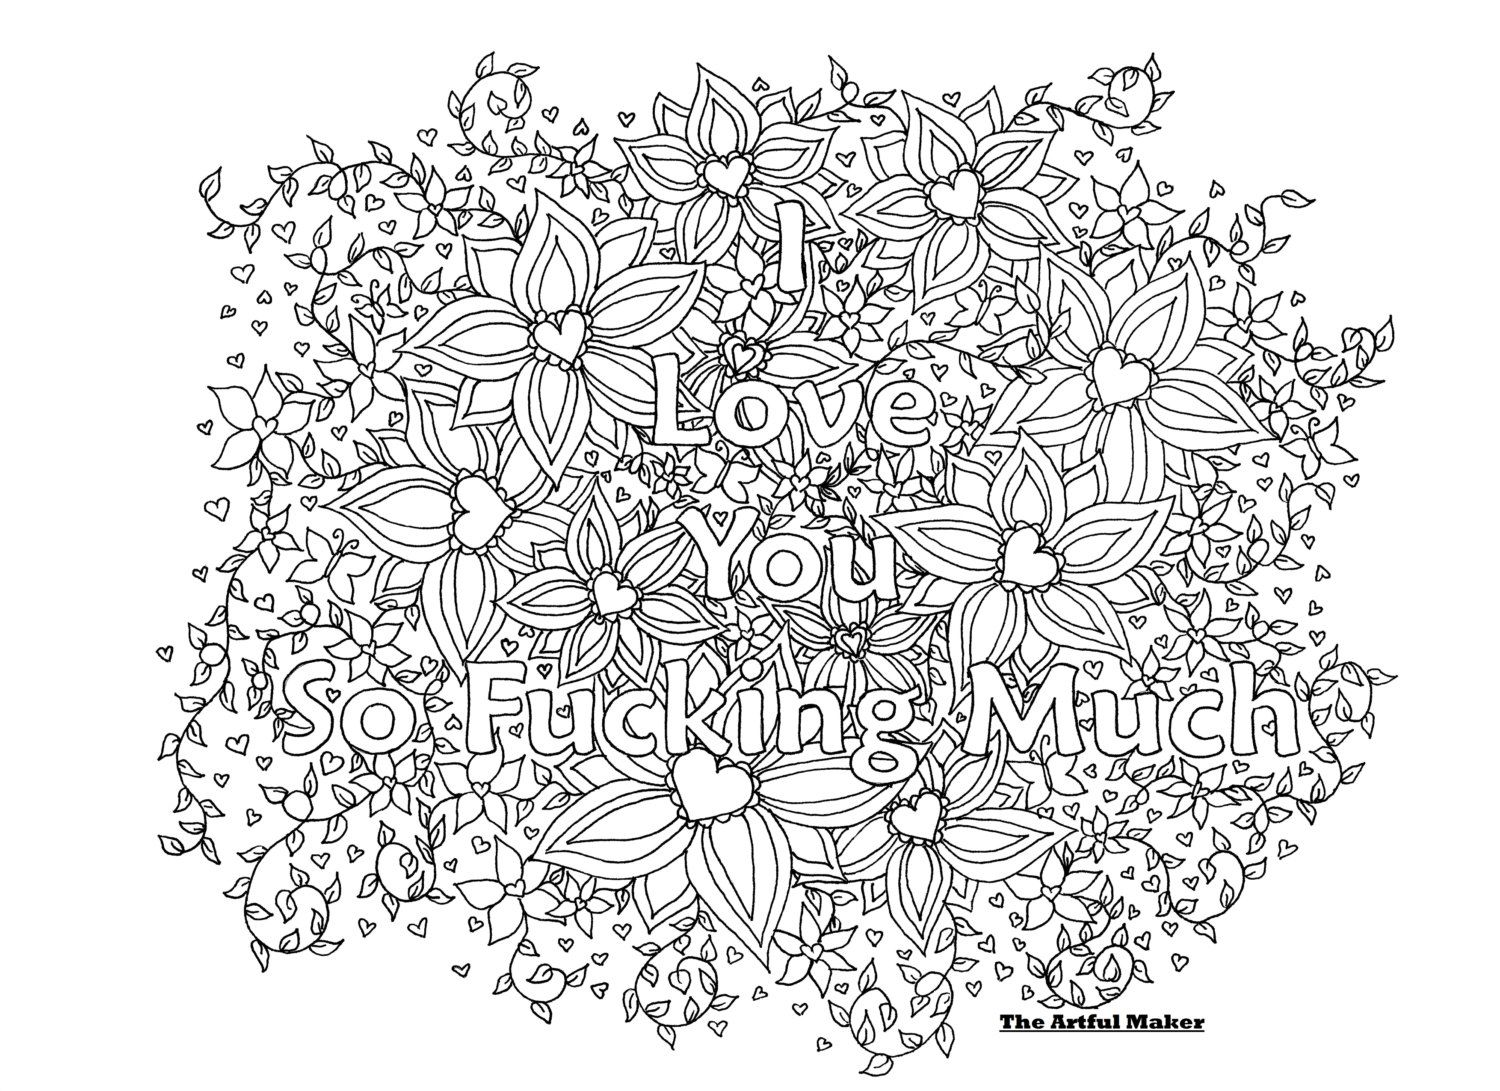 Printable coloring pages i love you - I Love You So Fucking Much Adult Coloring Page By The Artful Maker